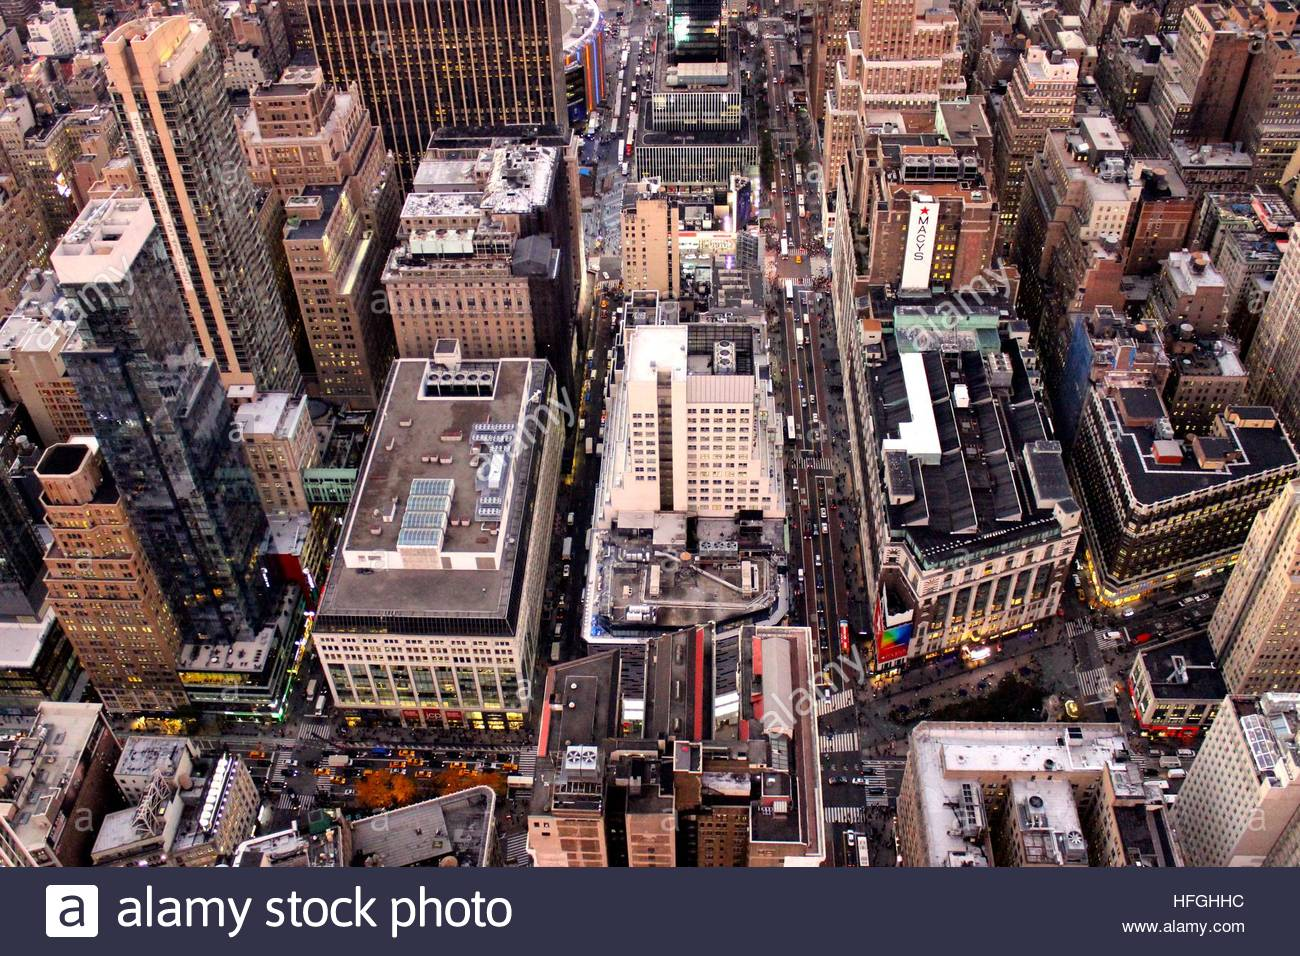 Blick in den Himmel von Gebäuden in New York City, New York Stockfoto